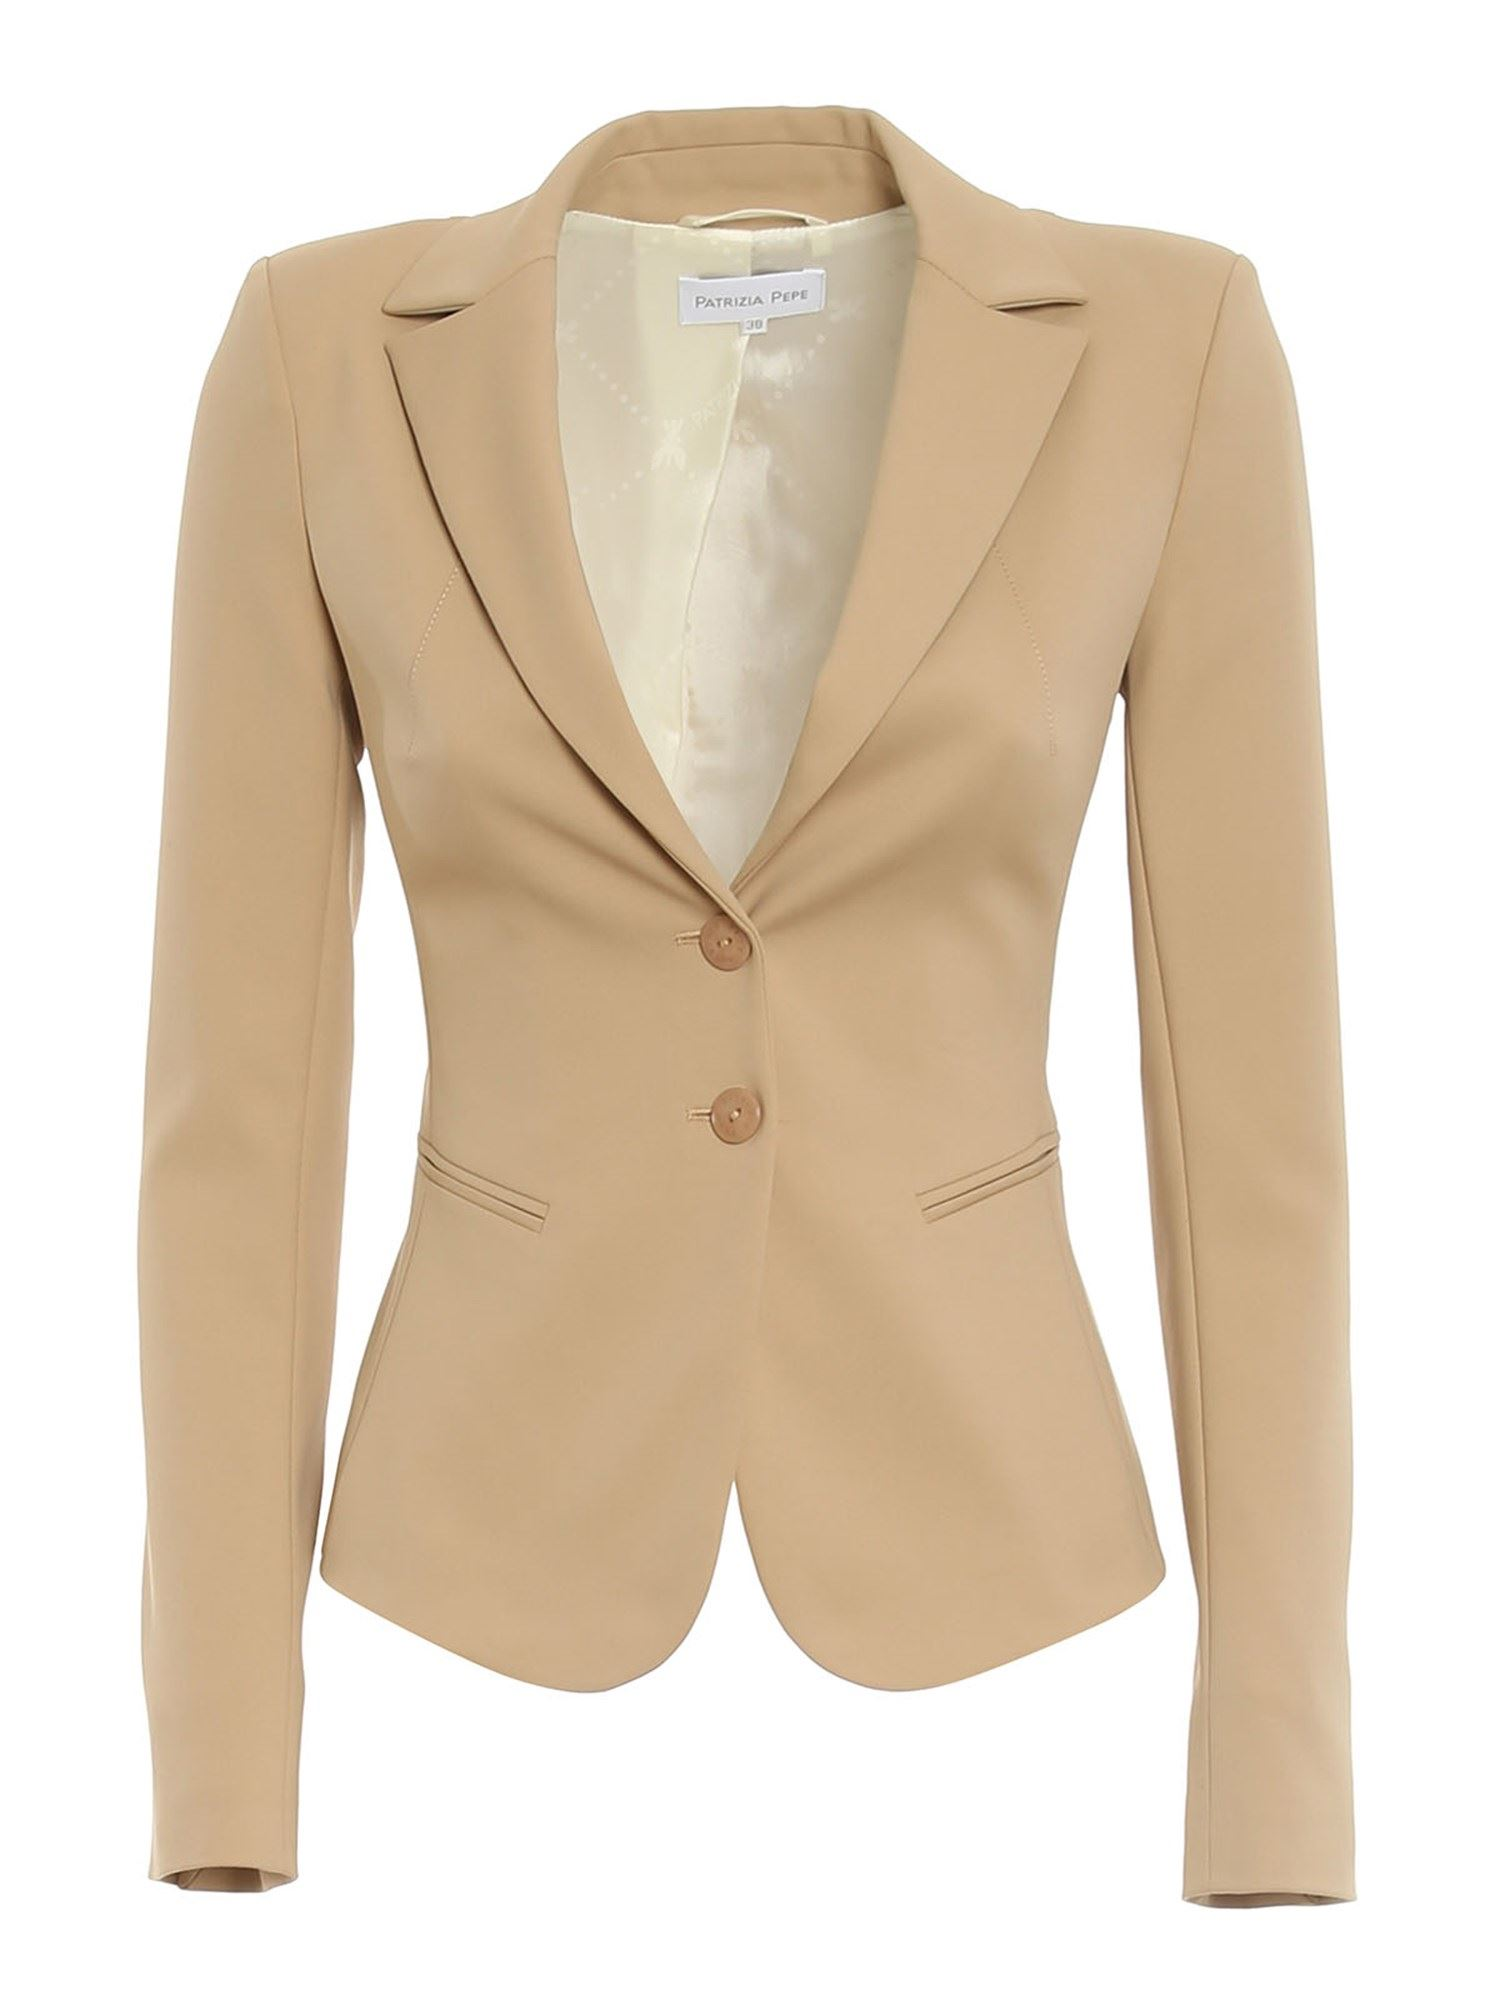 Patrizia Pepe STRETCH COTTON BLAZER IN BEIGE